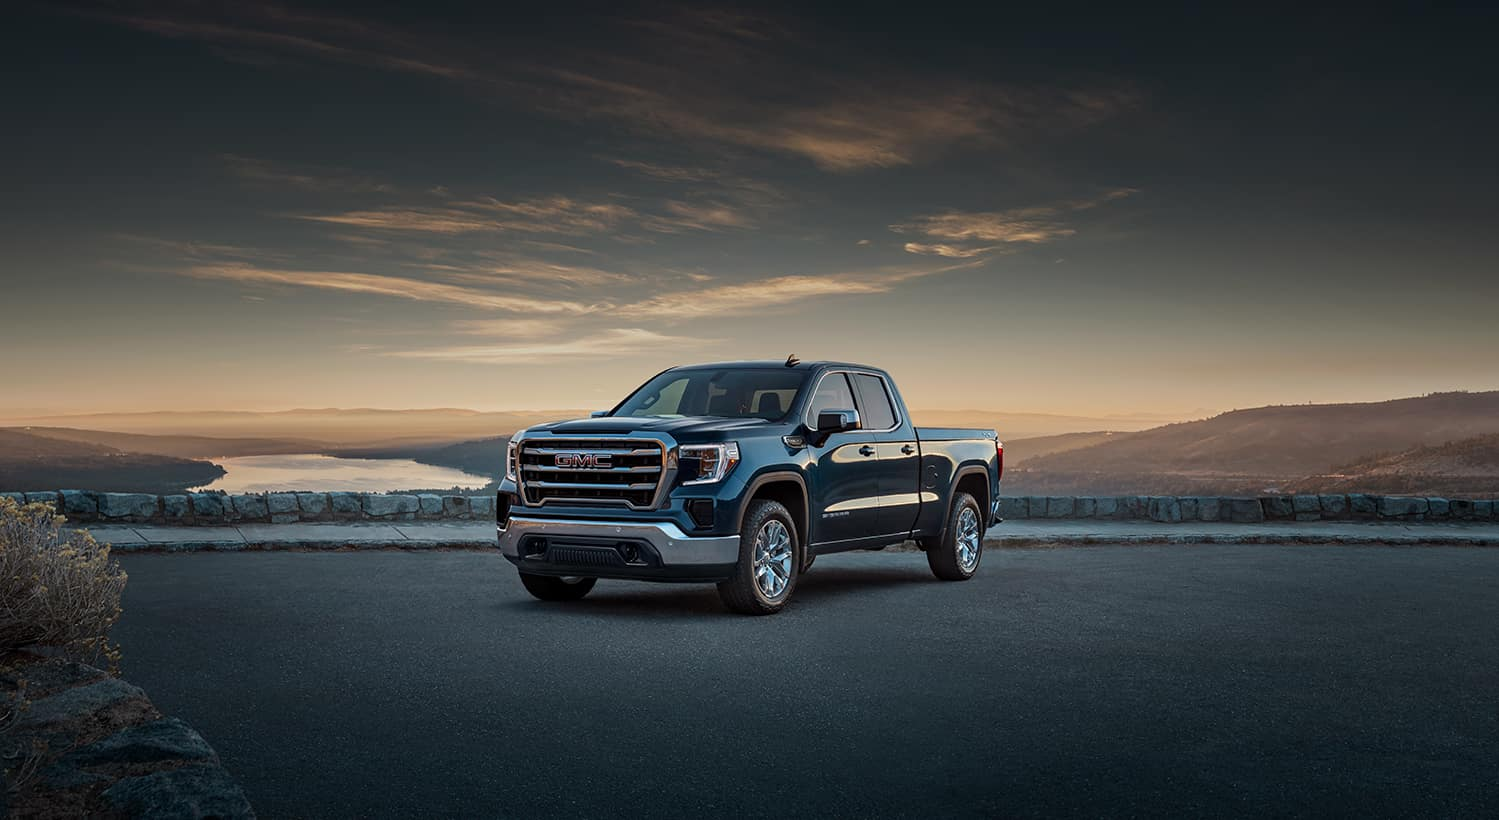 Jack Giambalvo Buick GMC is a Car Dealership in Harrisburg PA | 2022 GMC Sierra 1500 parked overlooking mountains